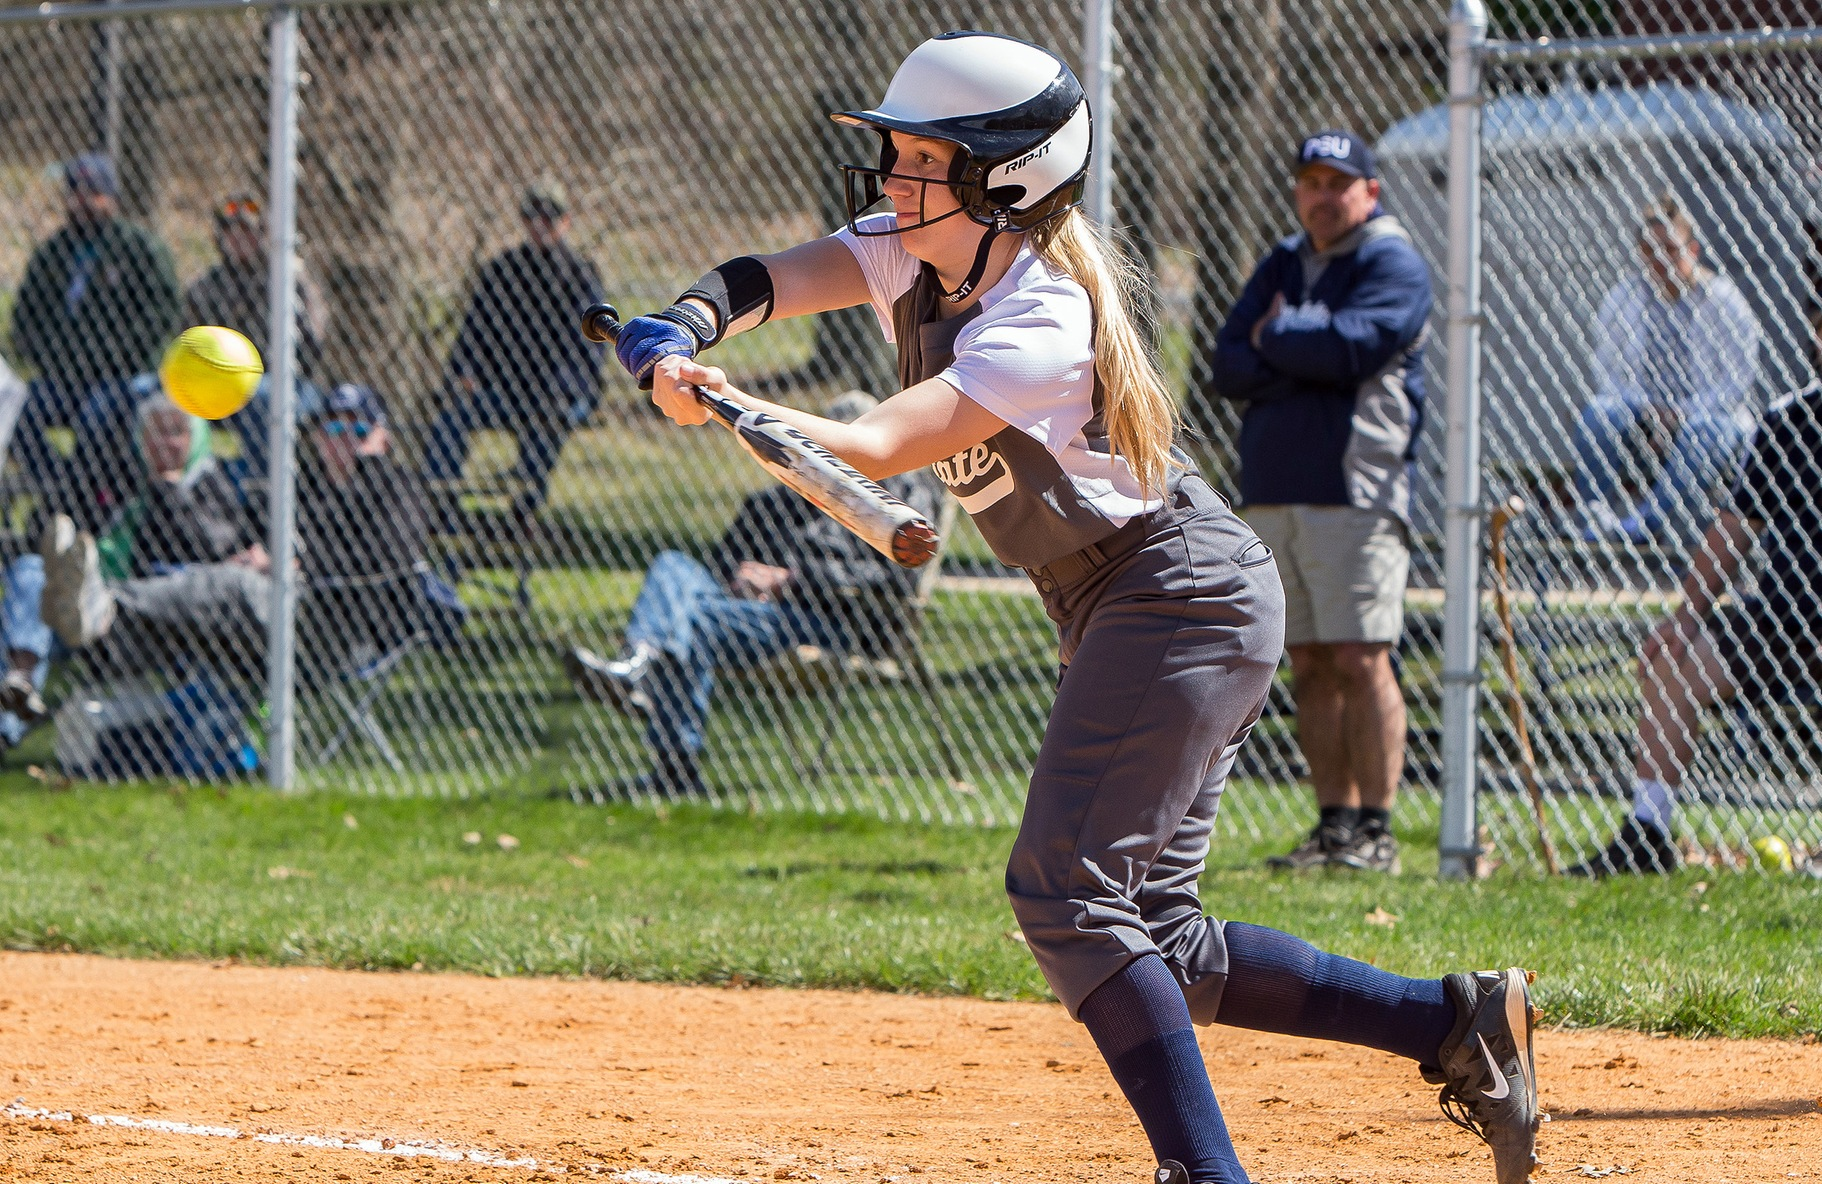 Penn State Mont Alto Drop Two to Conference Rival